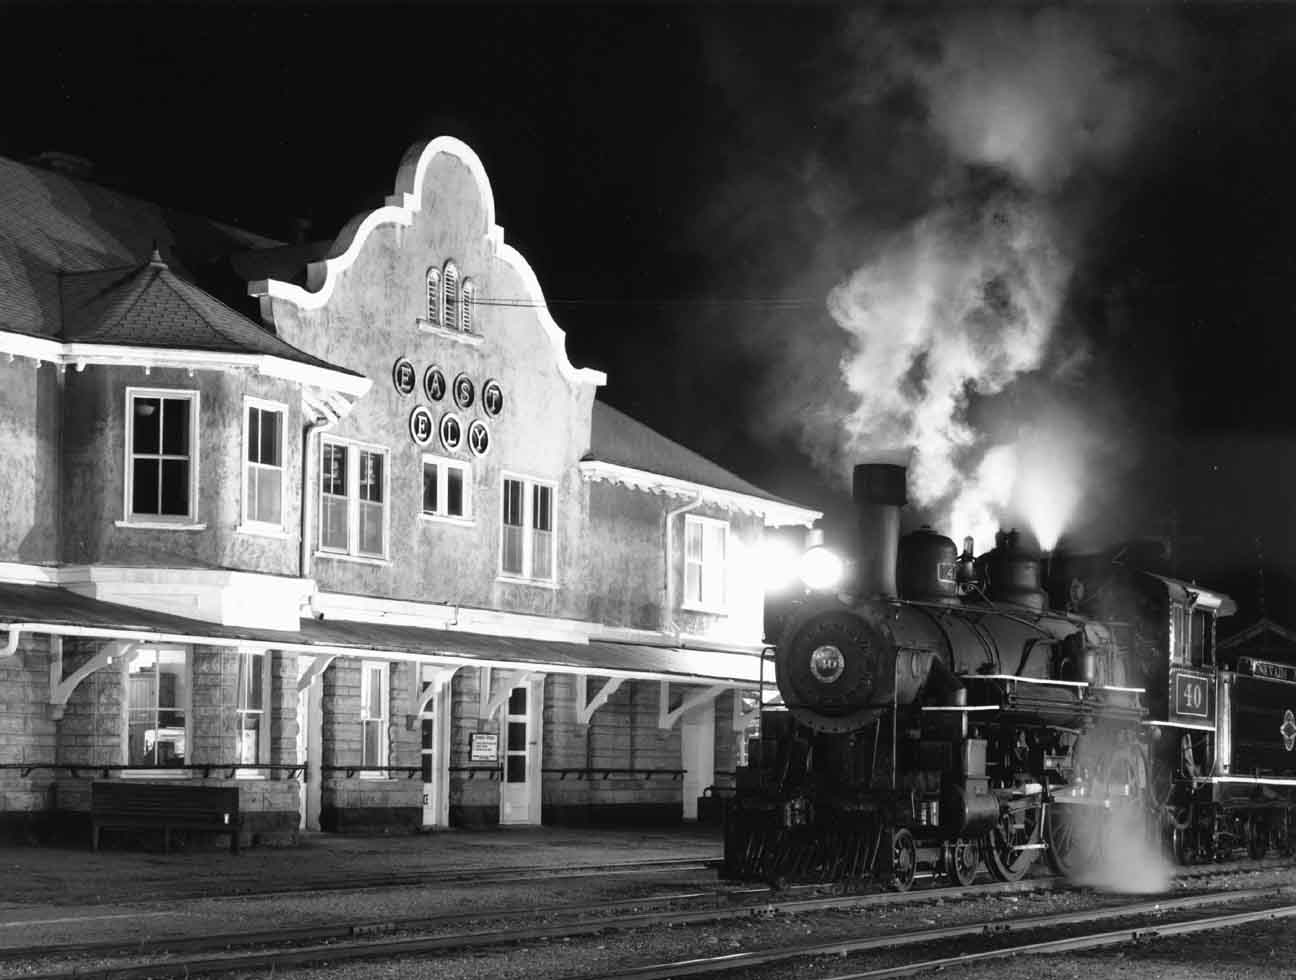 Night view of 40 at depot